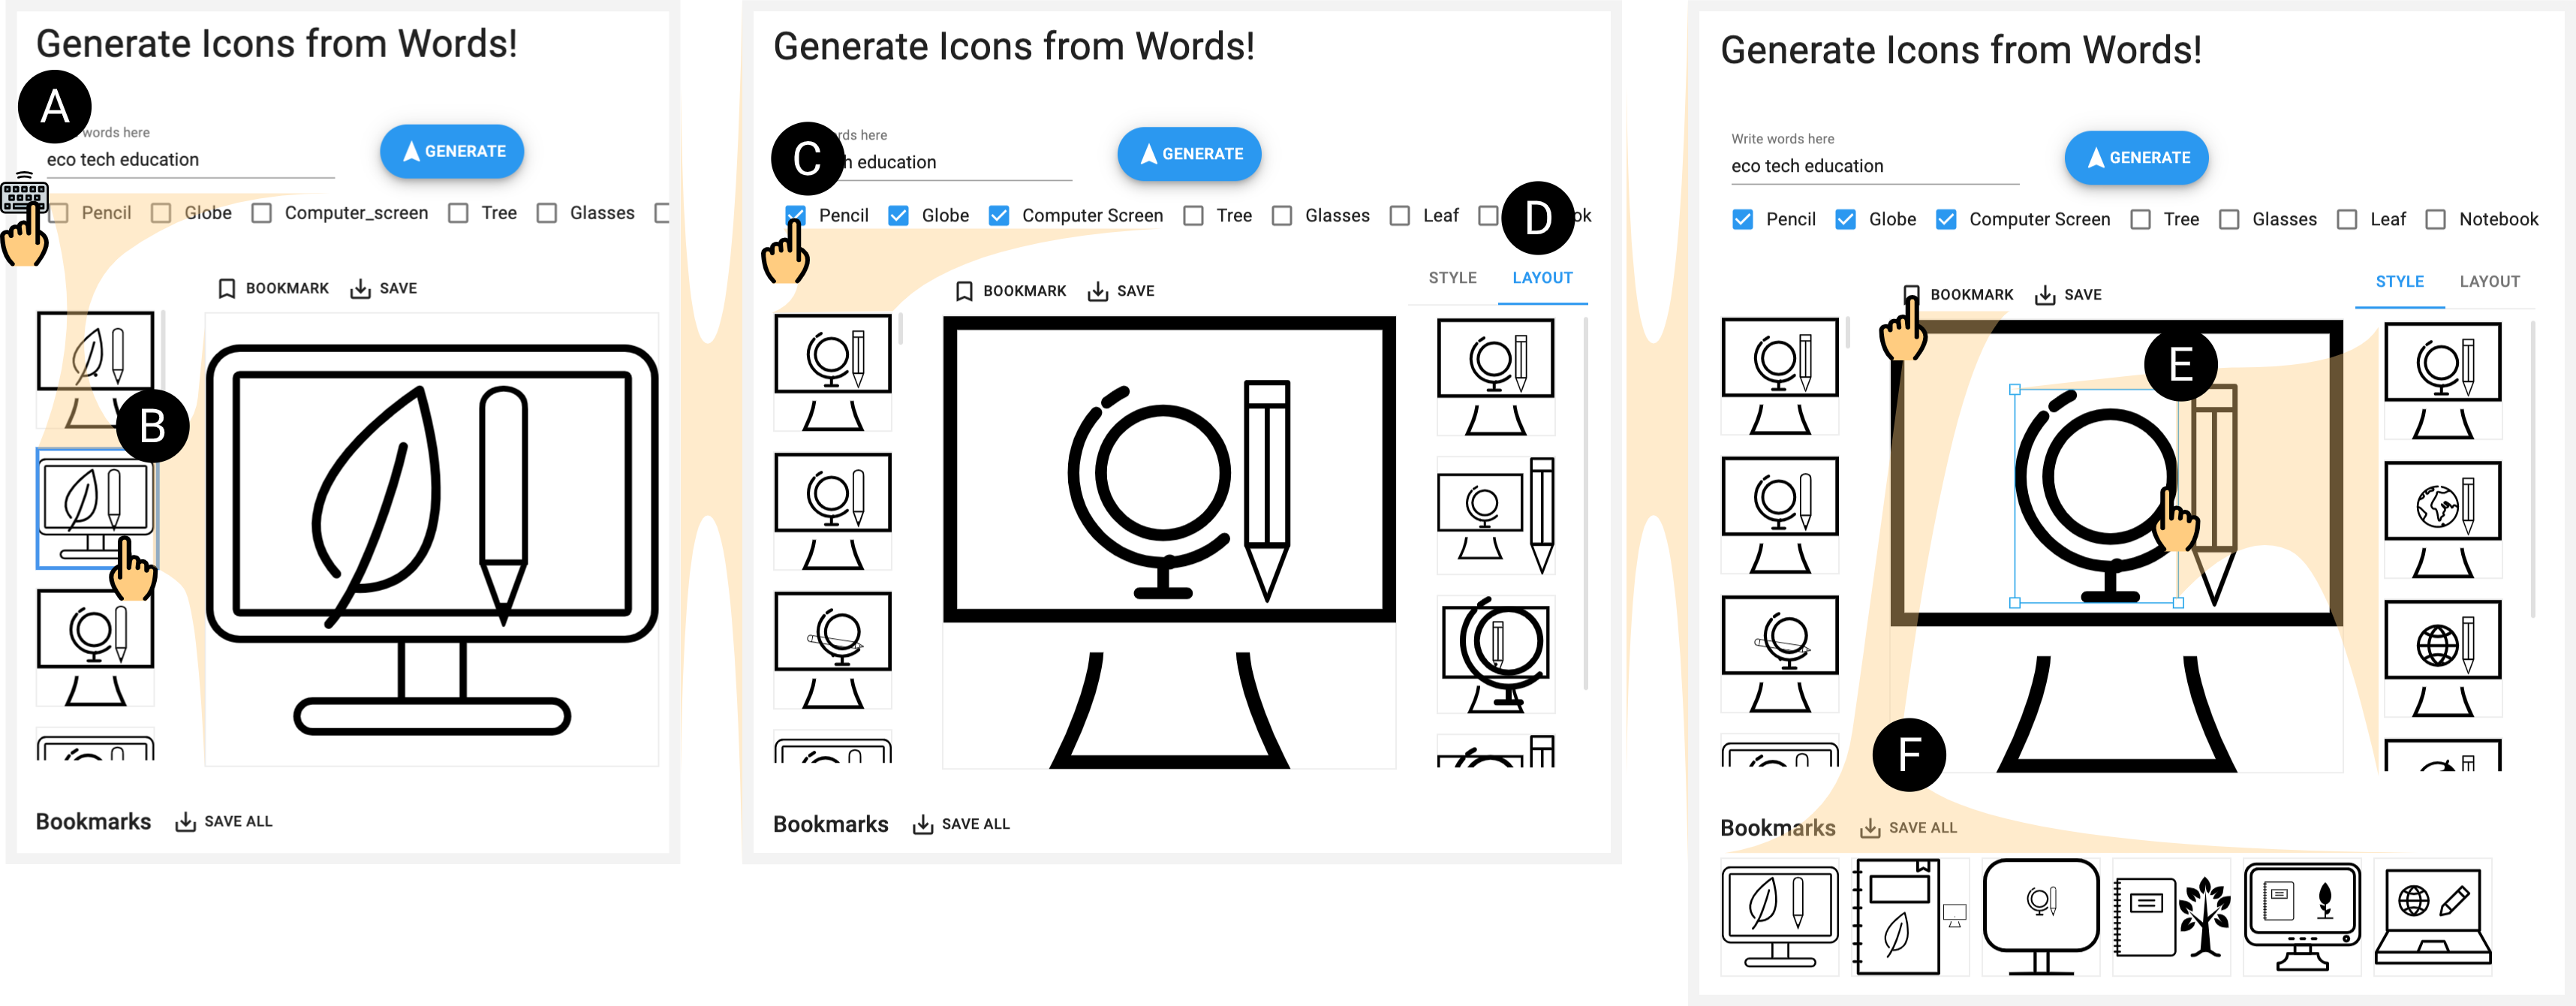 ICONATE: Automatic Compound Icon Generation and Ideation